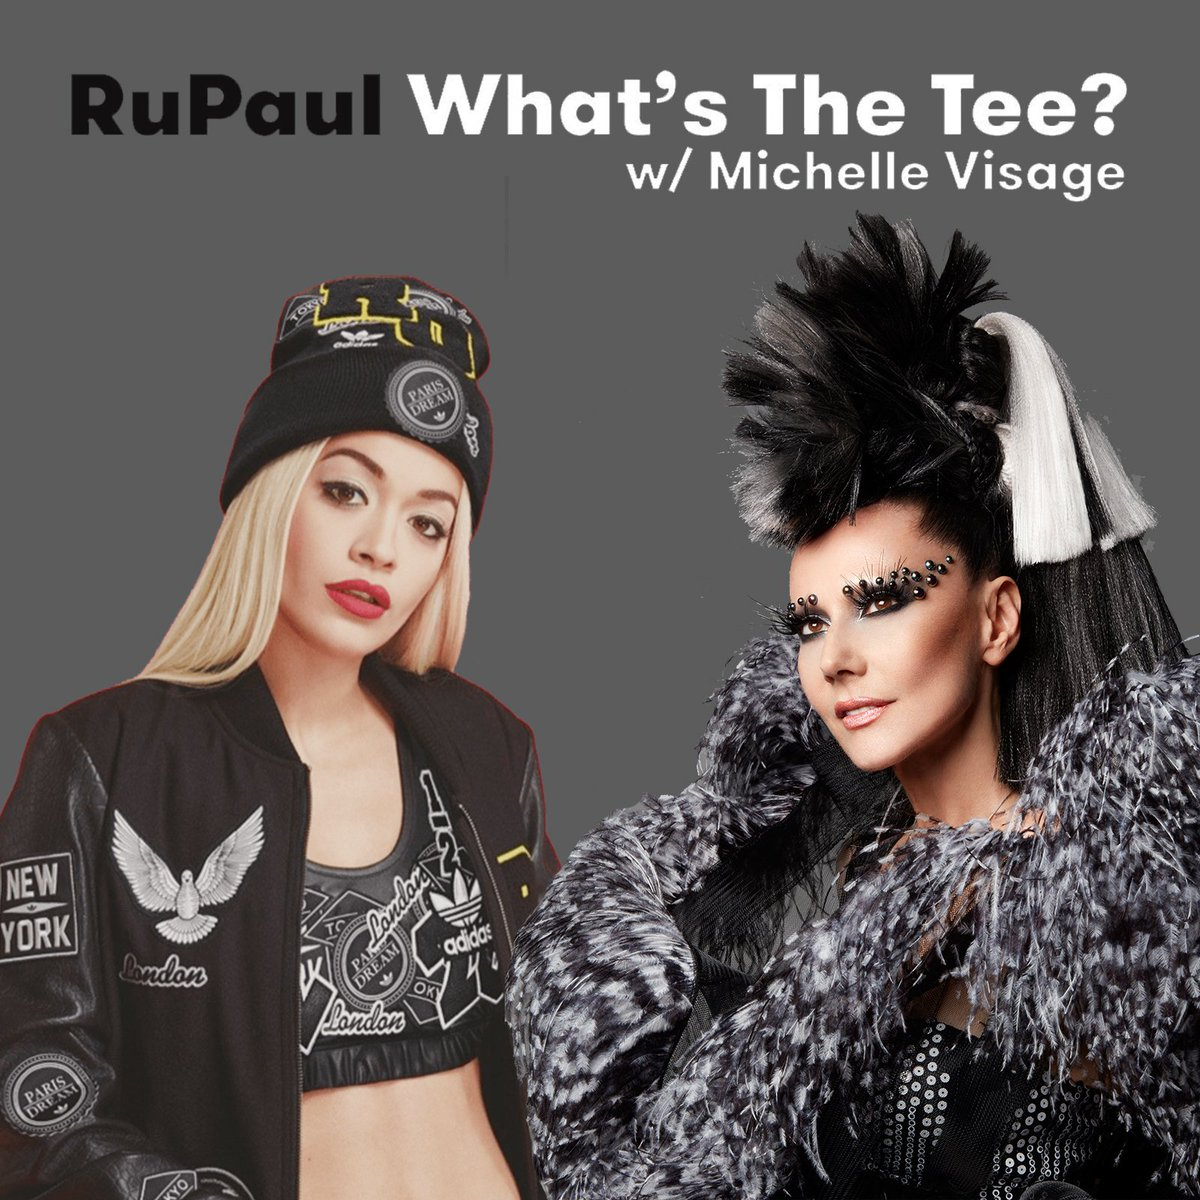 RT @RuPaul: NEW????Suzanne Bartsch & @RitaOra ???? What's The Tee w/@michellevisage @bartscharama https://t.co/jAxdz4glYY https://t.co/JUb7kt0iHl